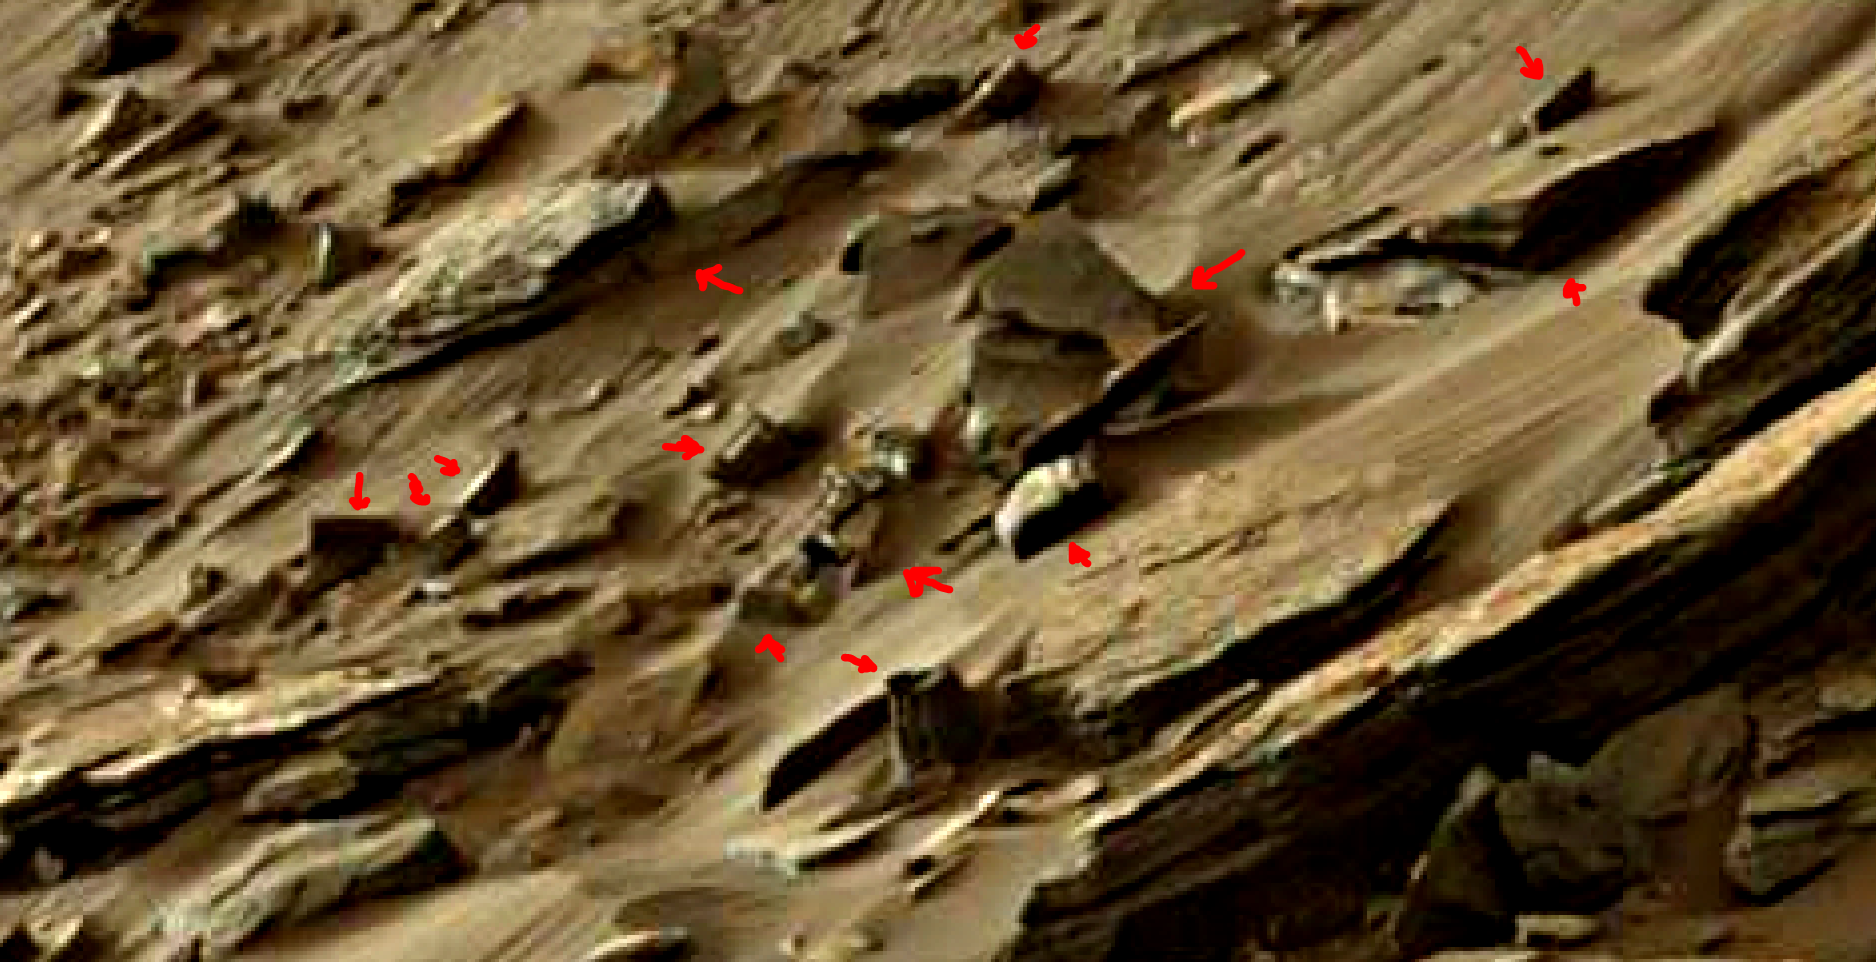 mars-sol-1454-anomaly-artifacts-30a-was-life-on-mars